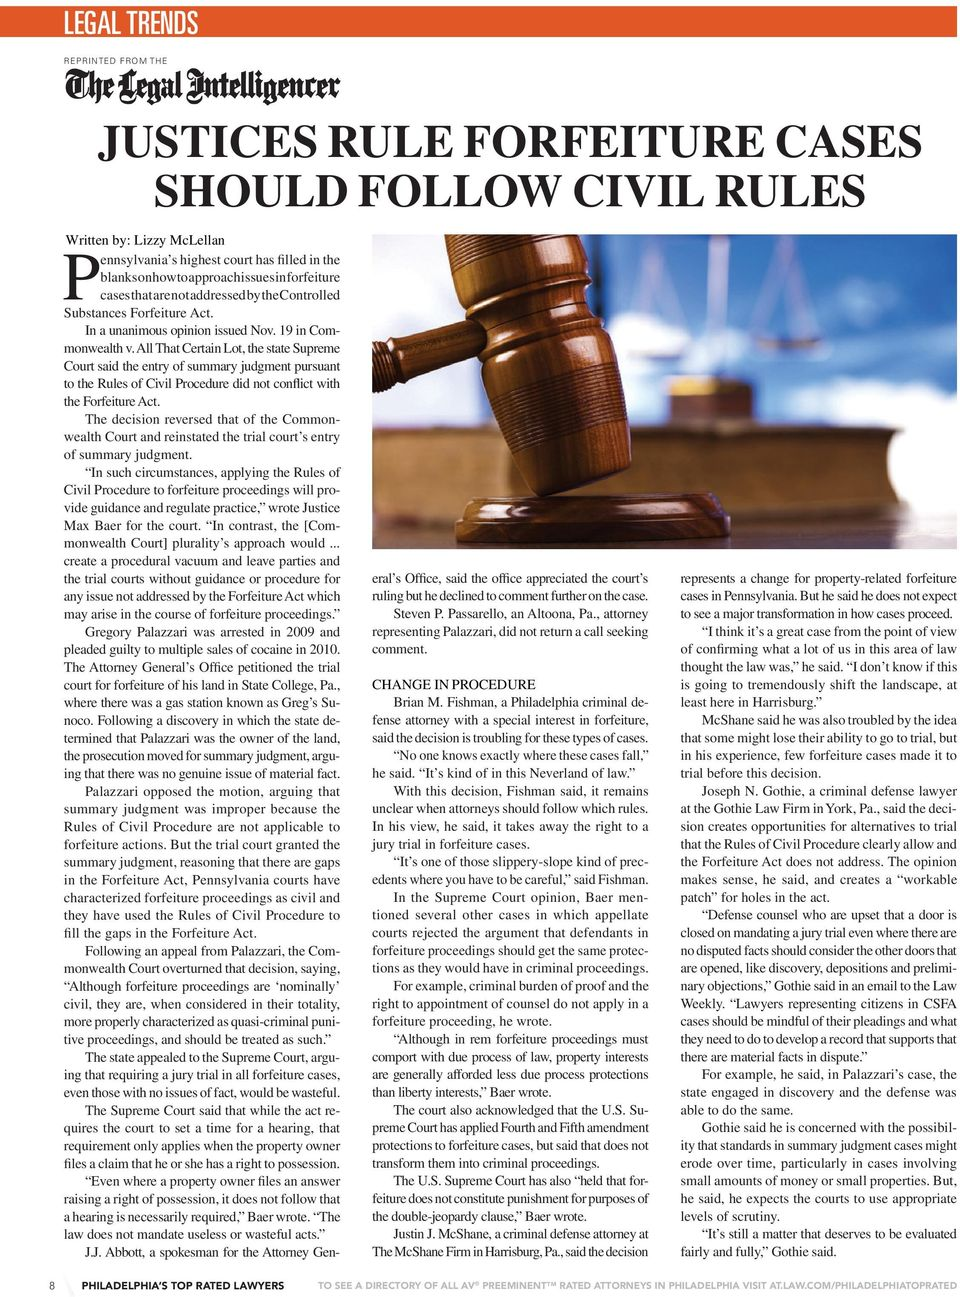 All That Certain Lot, the state Supreme Court said the entry of summary judgment pursuant to the Rules of Civil Procedure did not conflict with the Forfeiture Act.